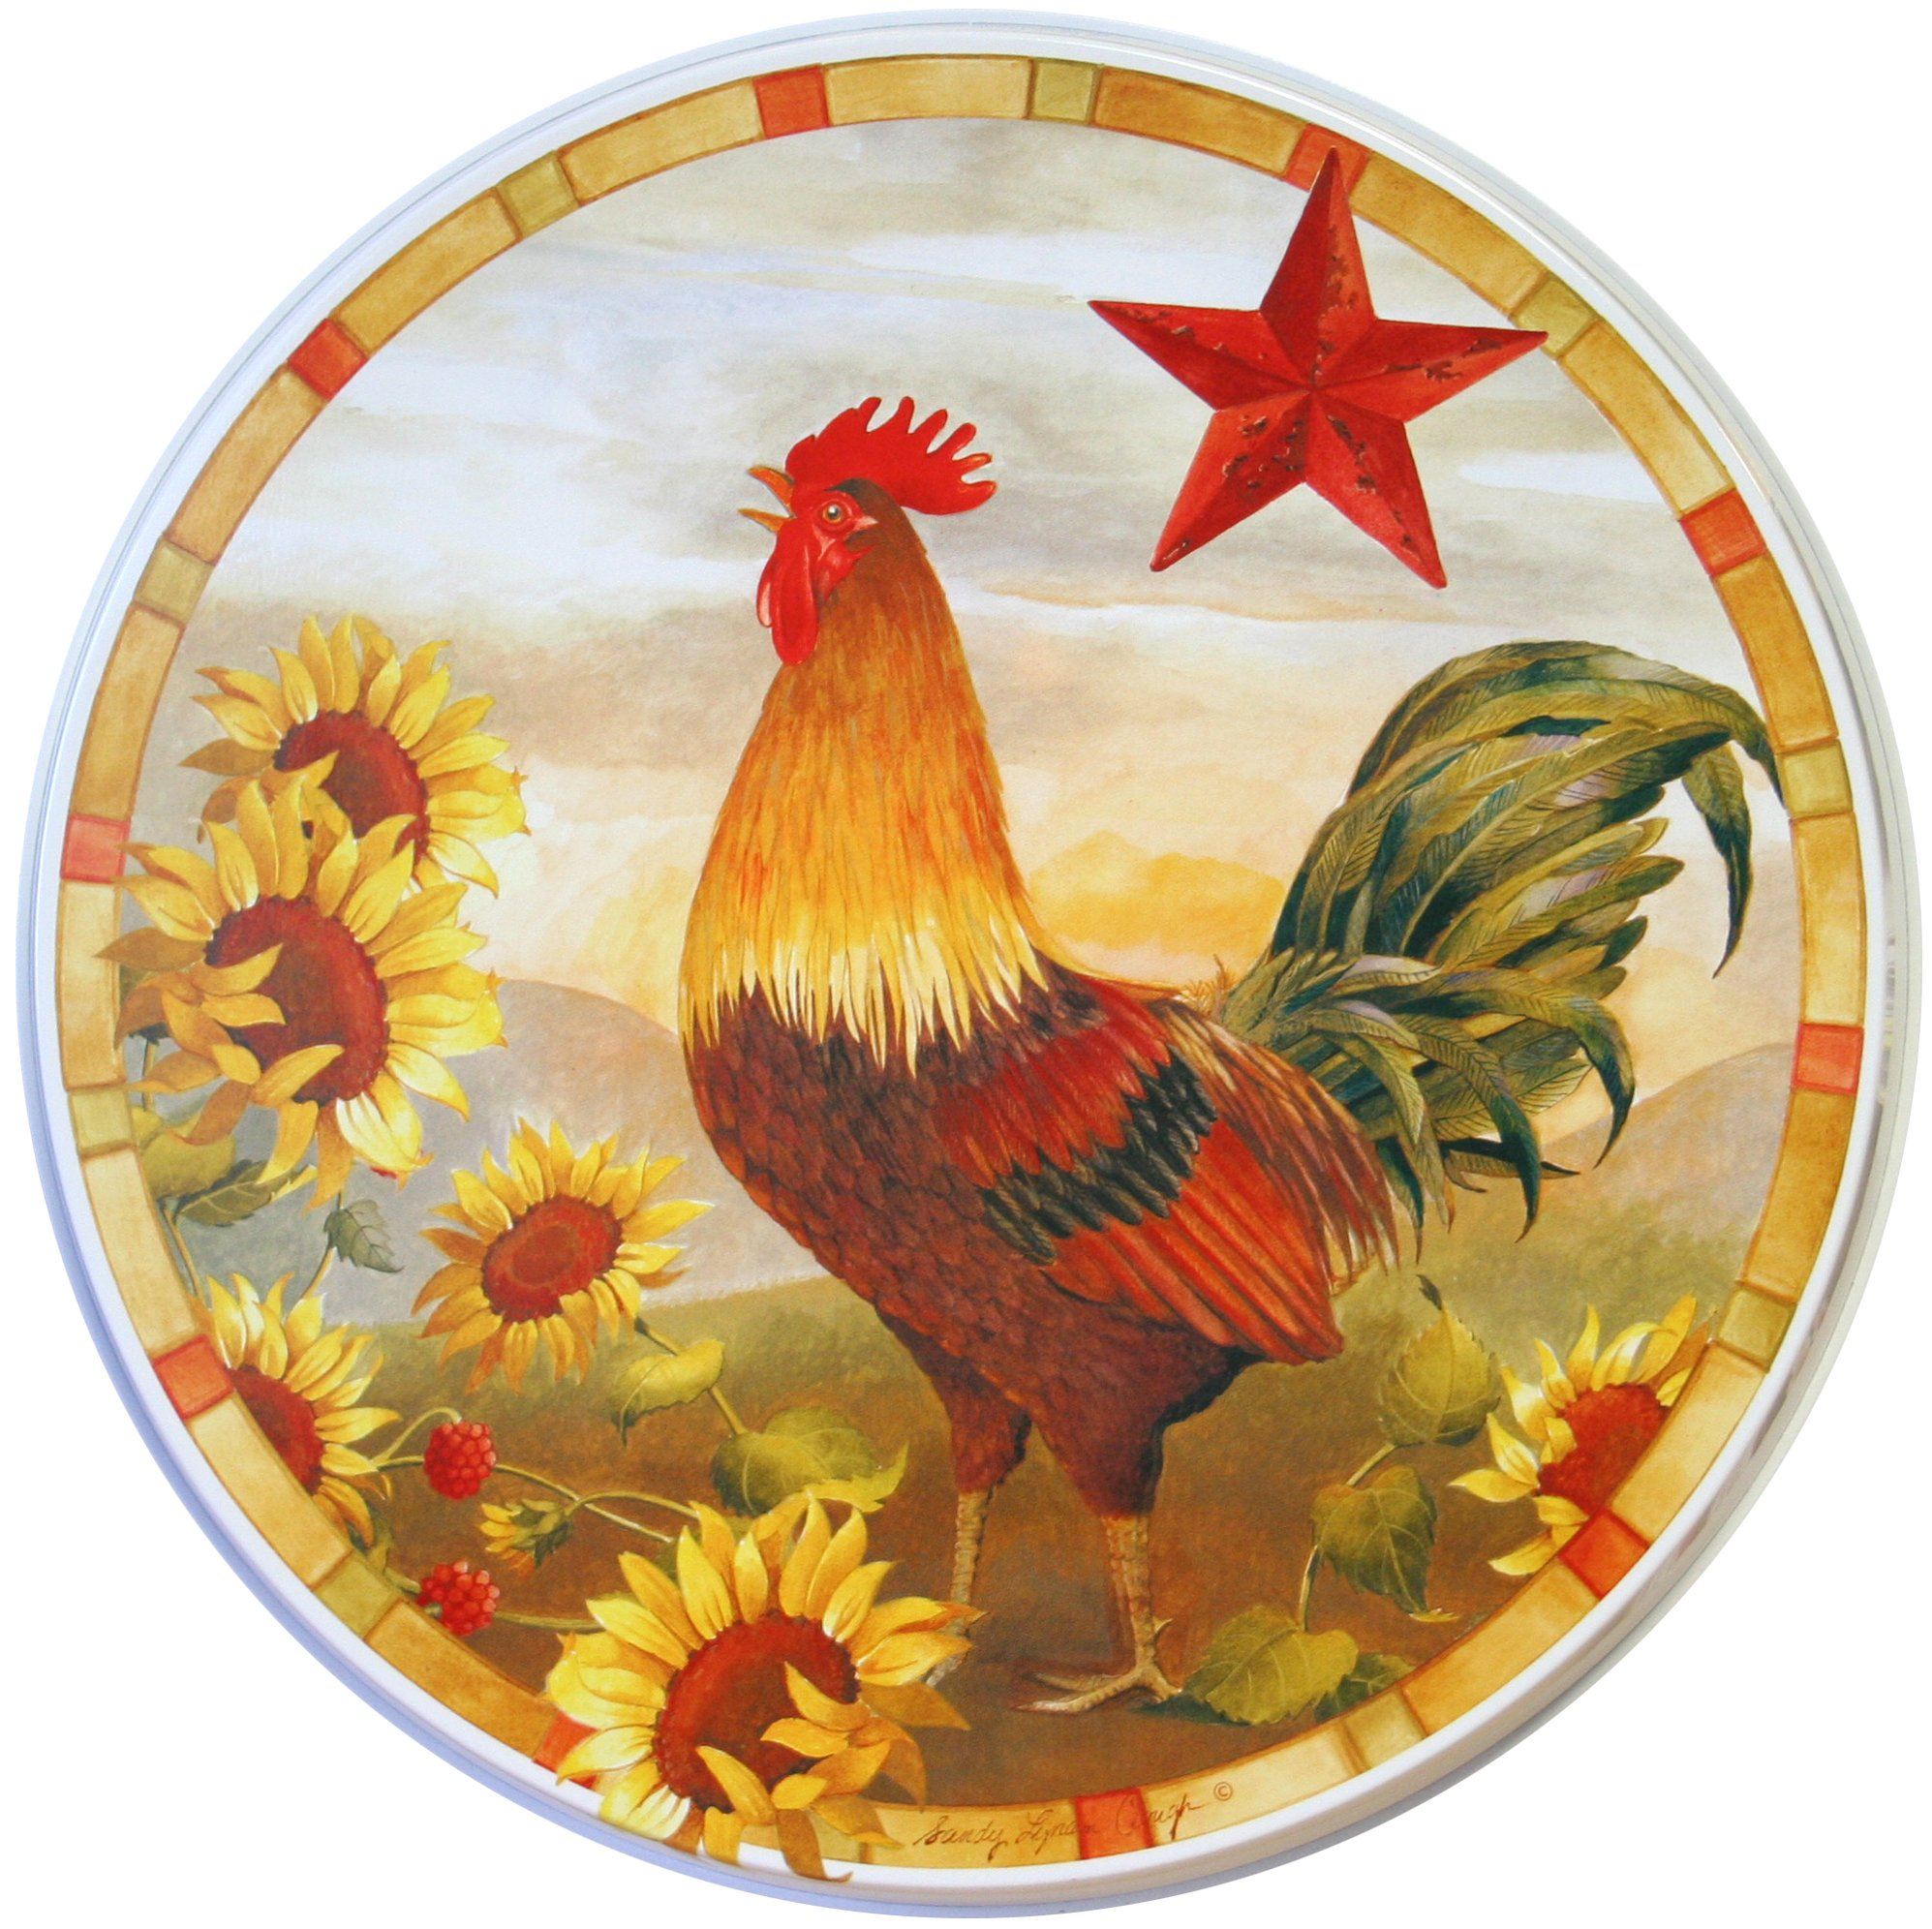 Reston Lloyd Electric Stove Burner Covers, set of 4, Morning Rooster All-Over Pattern by Reston Lloyd